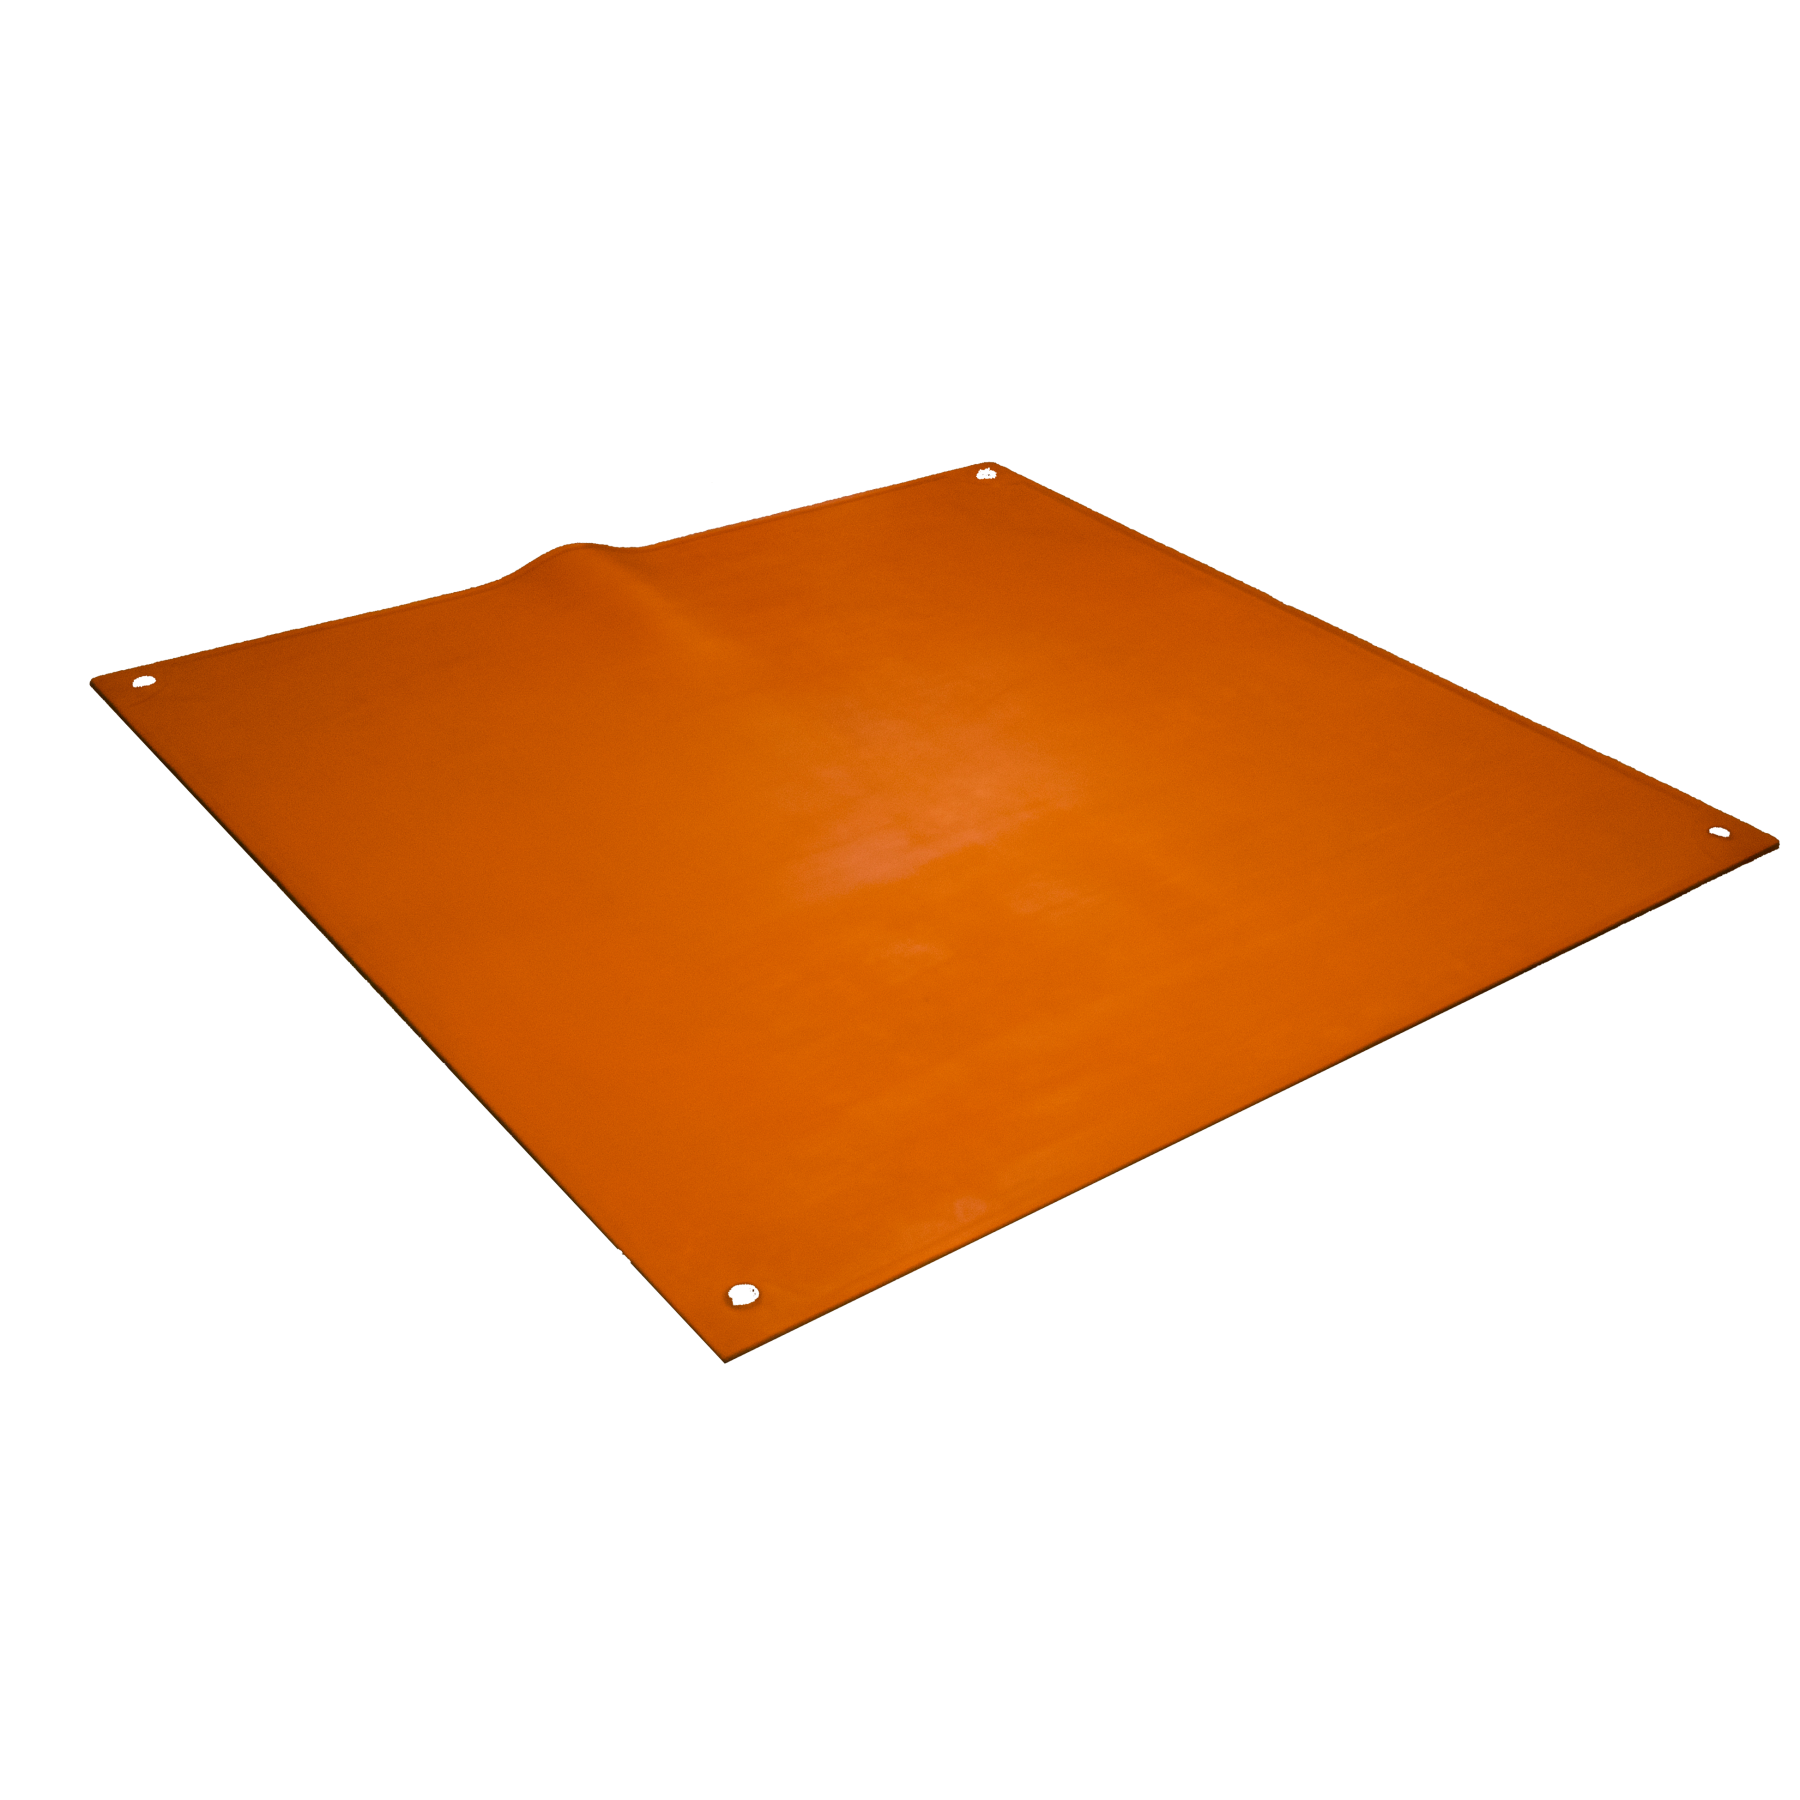 Armour Safety Products Ltd. - Volt® Insulated Blanket - Class 2